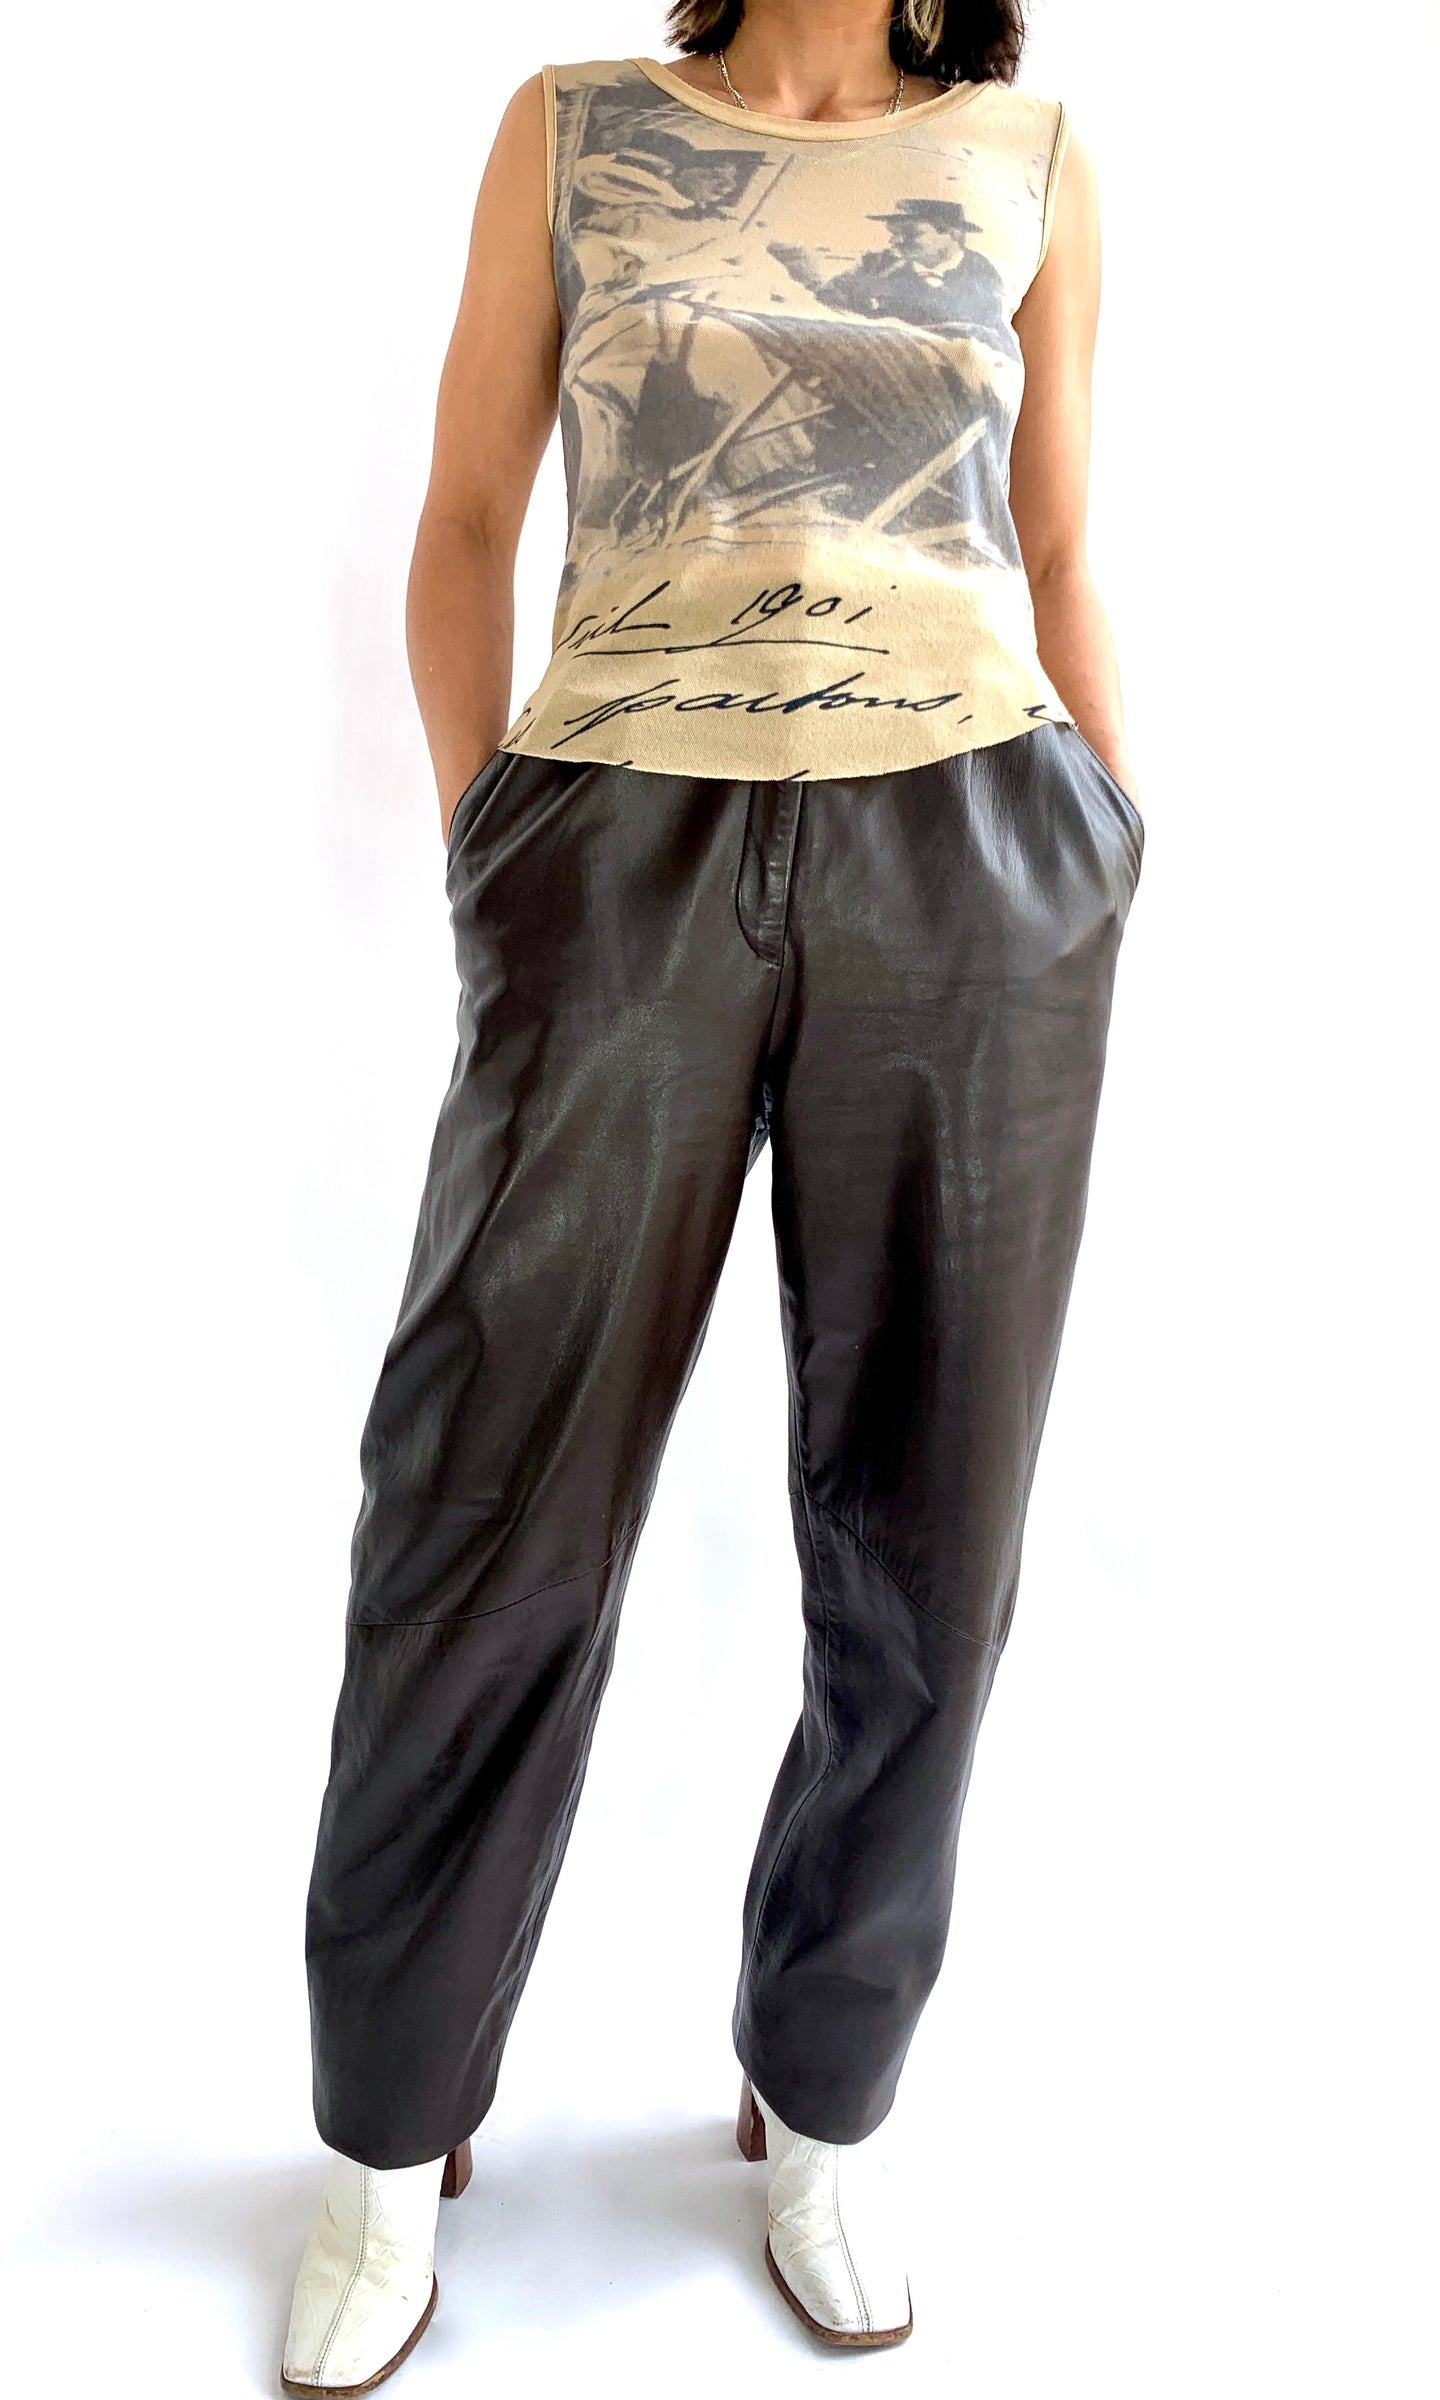 Chocolate Brown Butter Soft Leather Pants